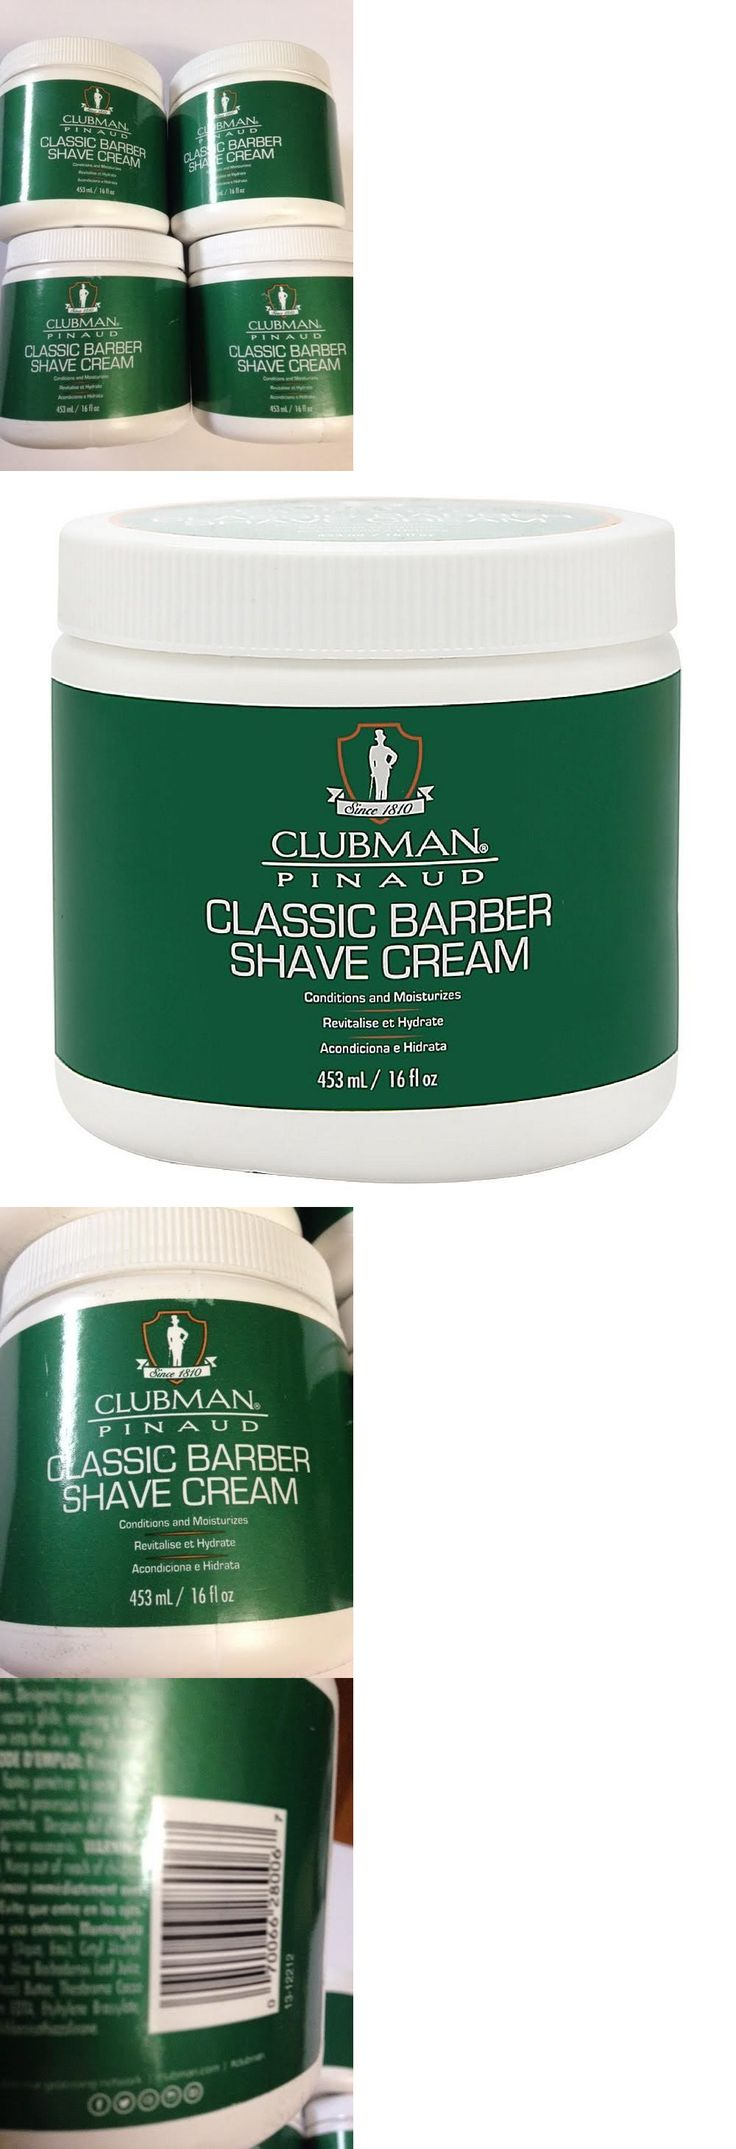 Shaving Creams Foams and Gels: (Lot Of 4 16Oz Tubs) Clubman Pinaud Classic Barber Shave Cream 16 Oz New -> BUY IT NOW ONLY: $31.99 on eBay!